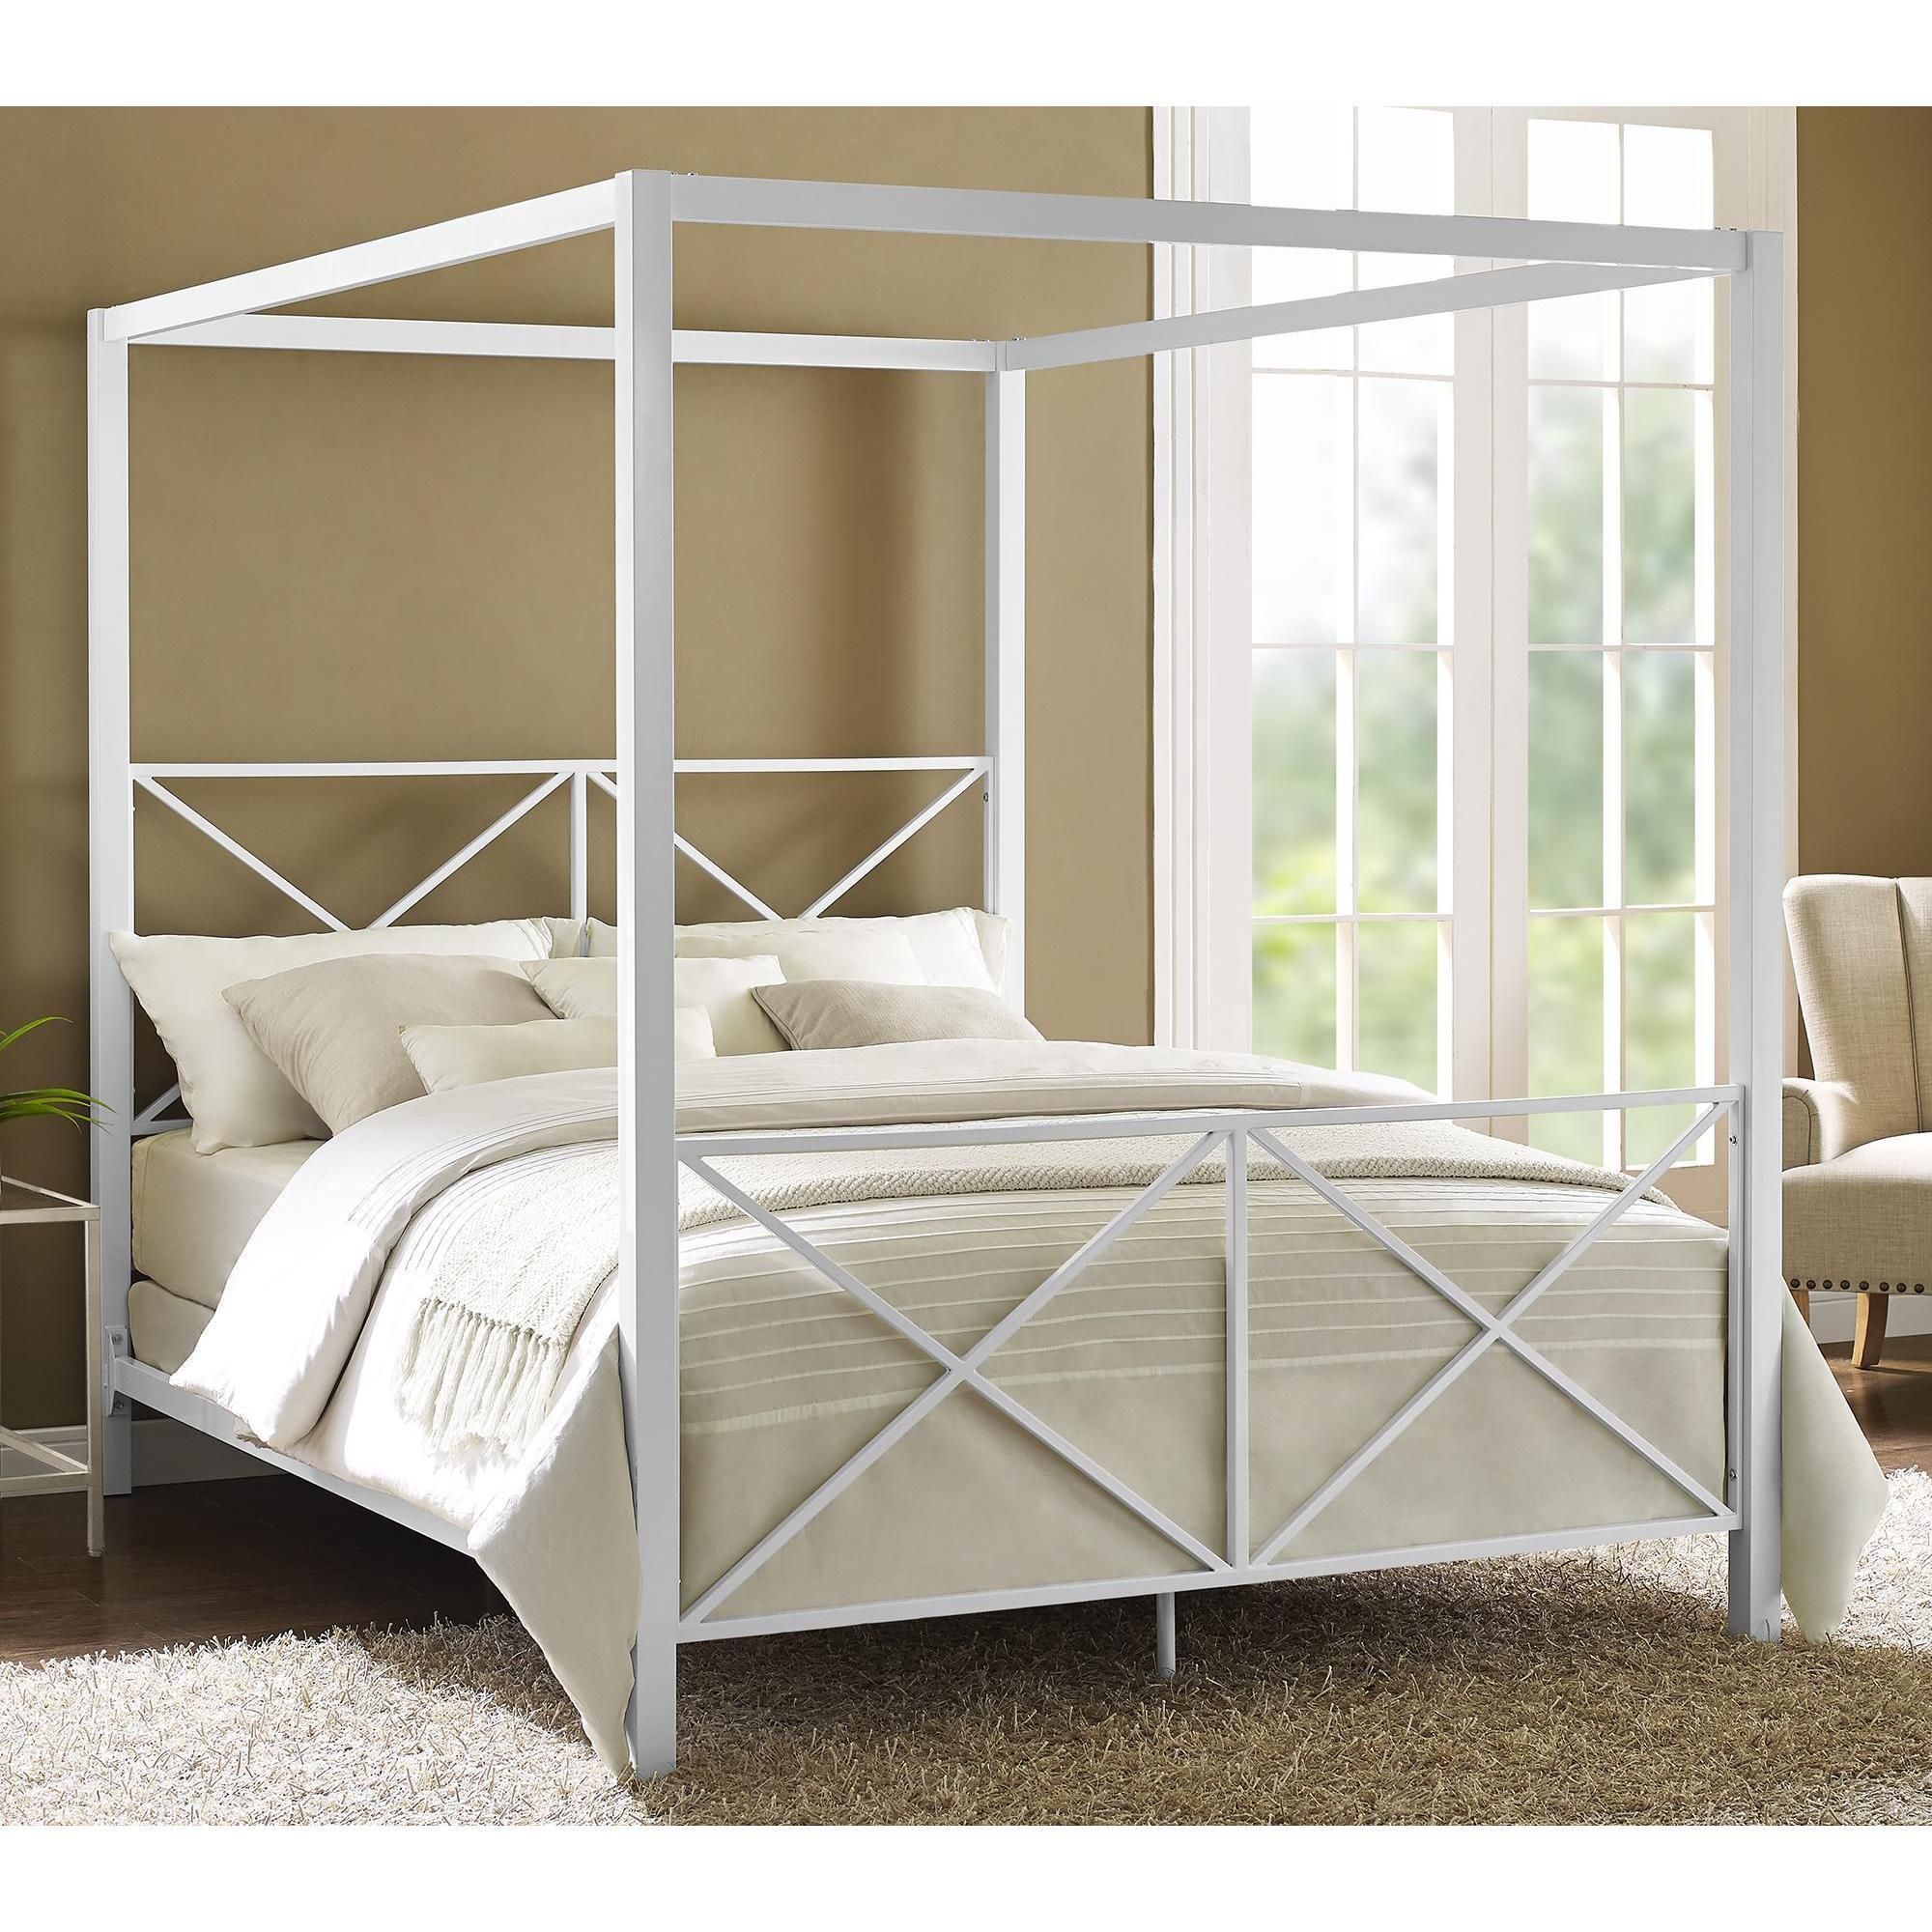 Avenue Greene Rosemarie White Metal Canopy Bed Free Shipping Today 20255017